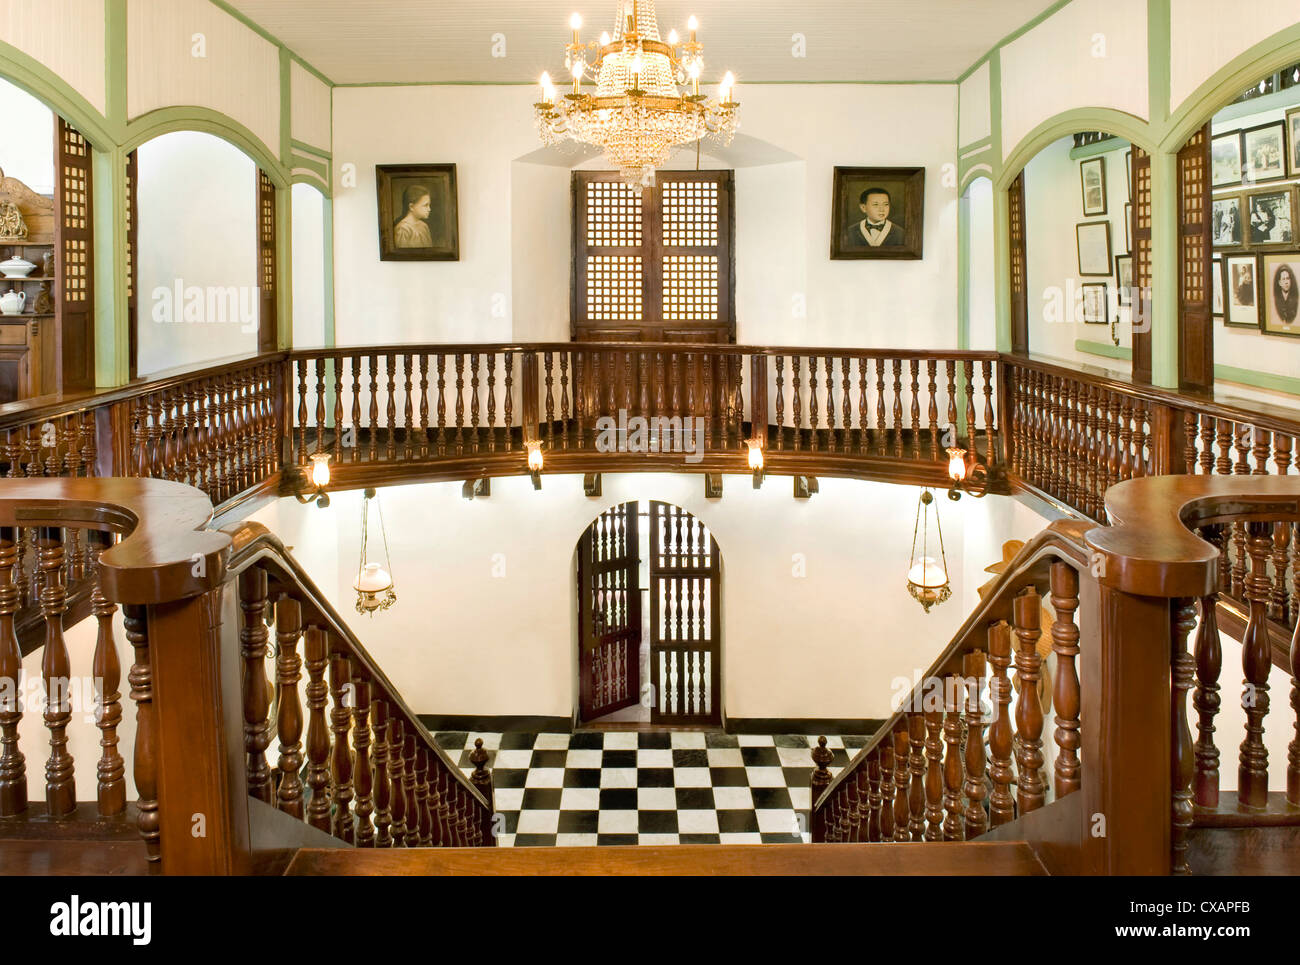 Staircase Of The Pastor Heritage House Dating From 1883, A Classic Filipino  Style Bahay Na Bato In Batangas, Philippines